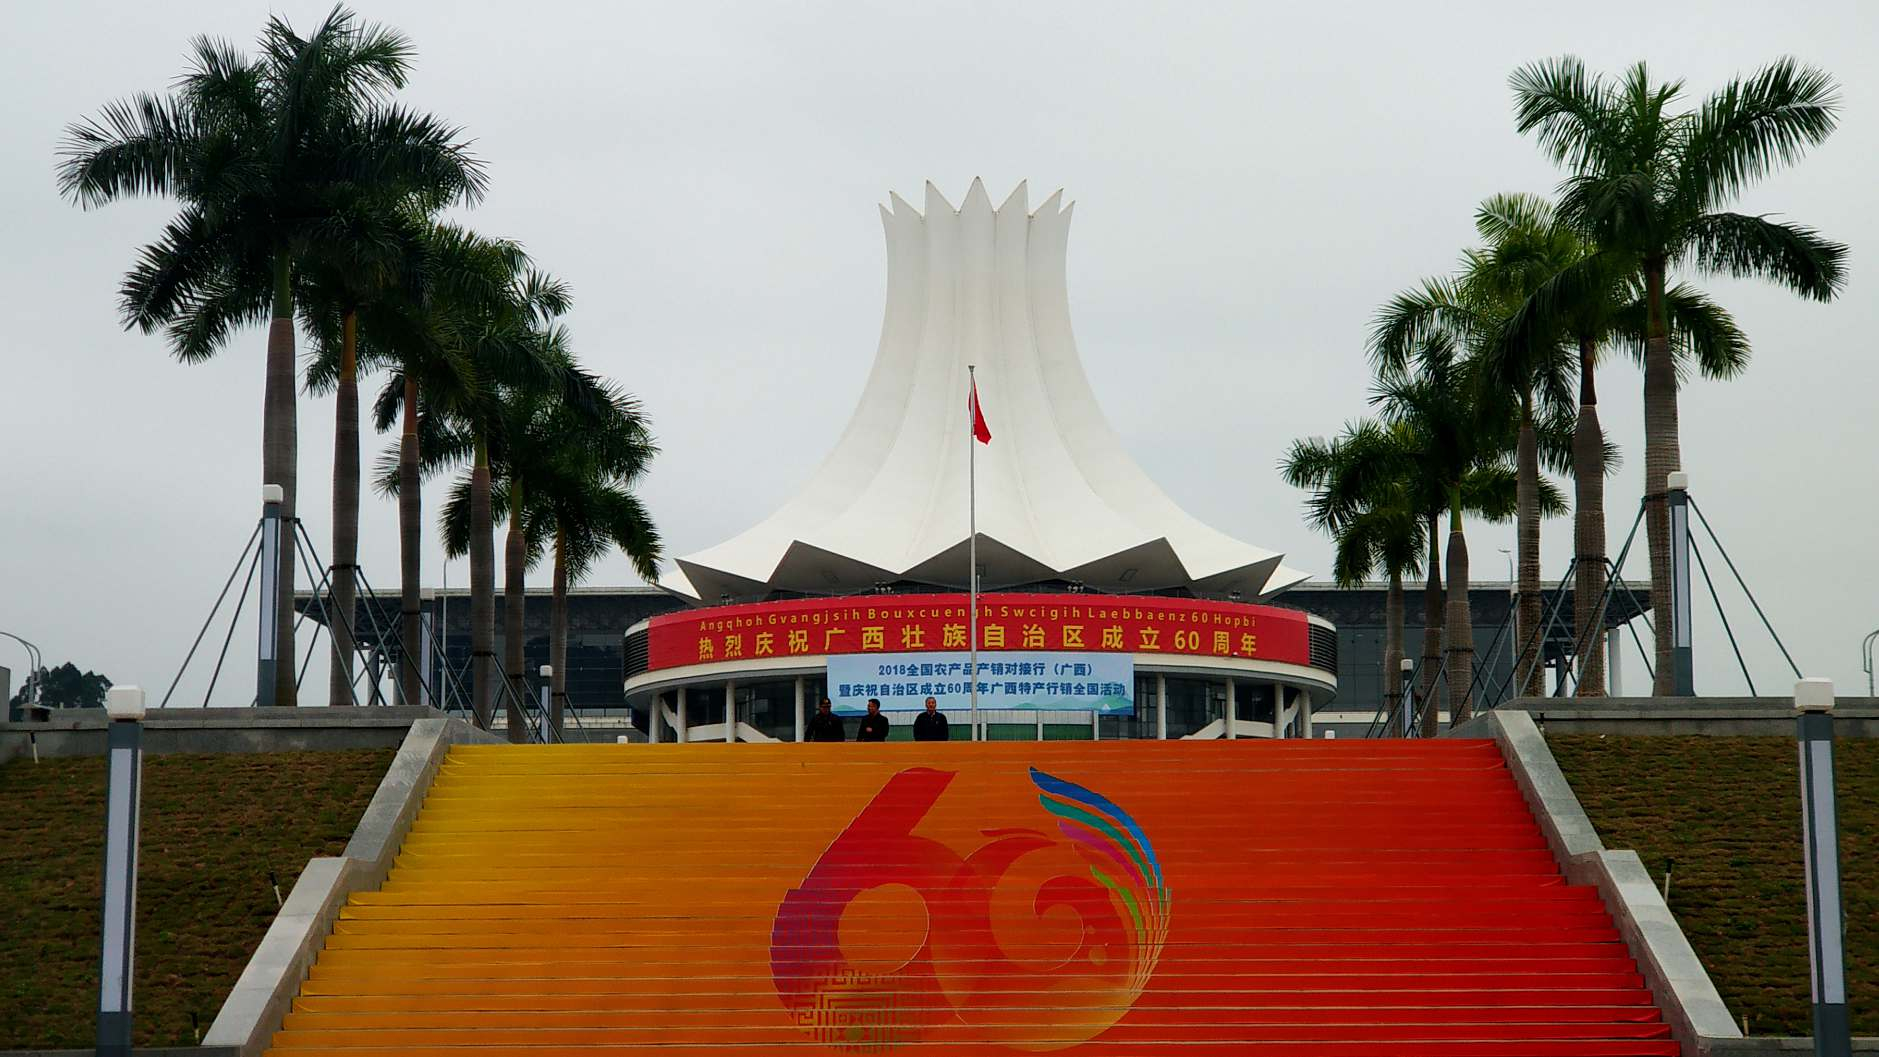 Central officials arrive in Guangxi for 60th anniversary celebrations